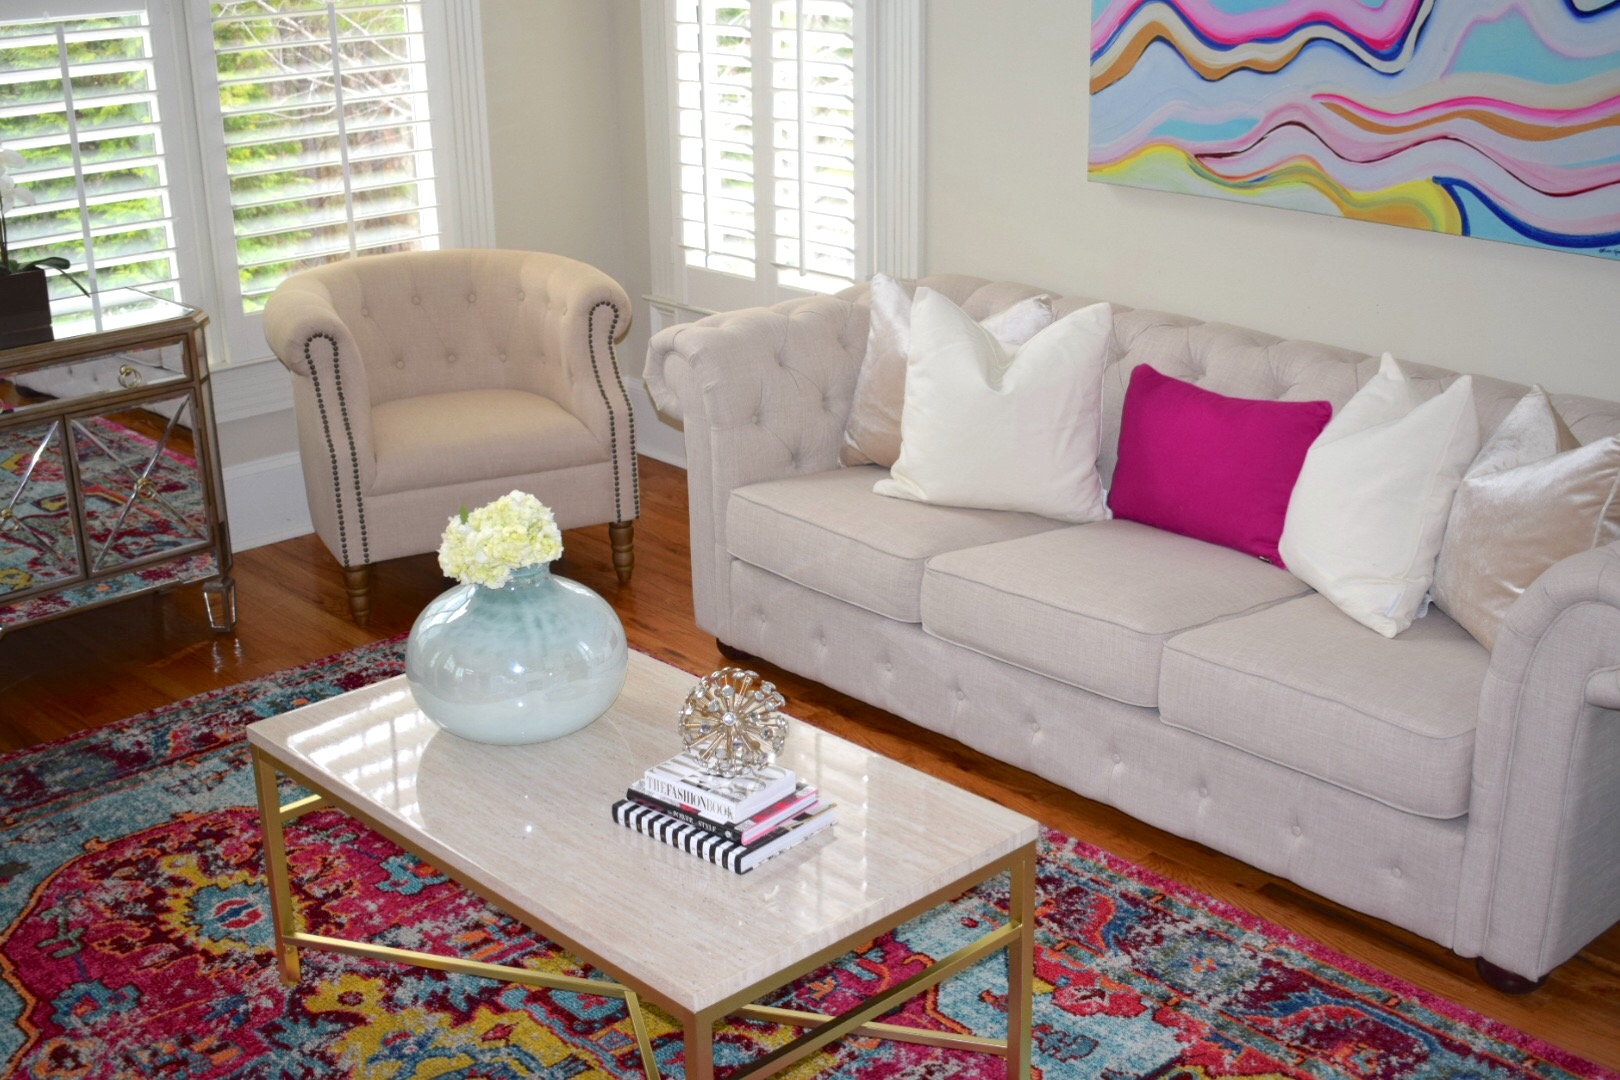 Oliver Gal Flow Abstract Wall Art in Sitting Room with Ivory Tufted Sofa and Chairs with Gold Accent Coffee Table on Pink Rug - Crockpot Empire